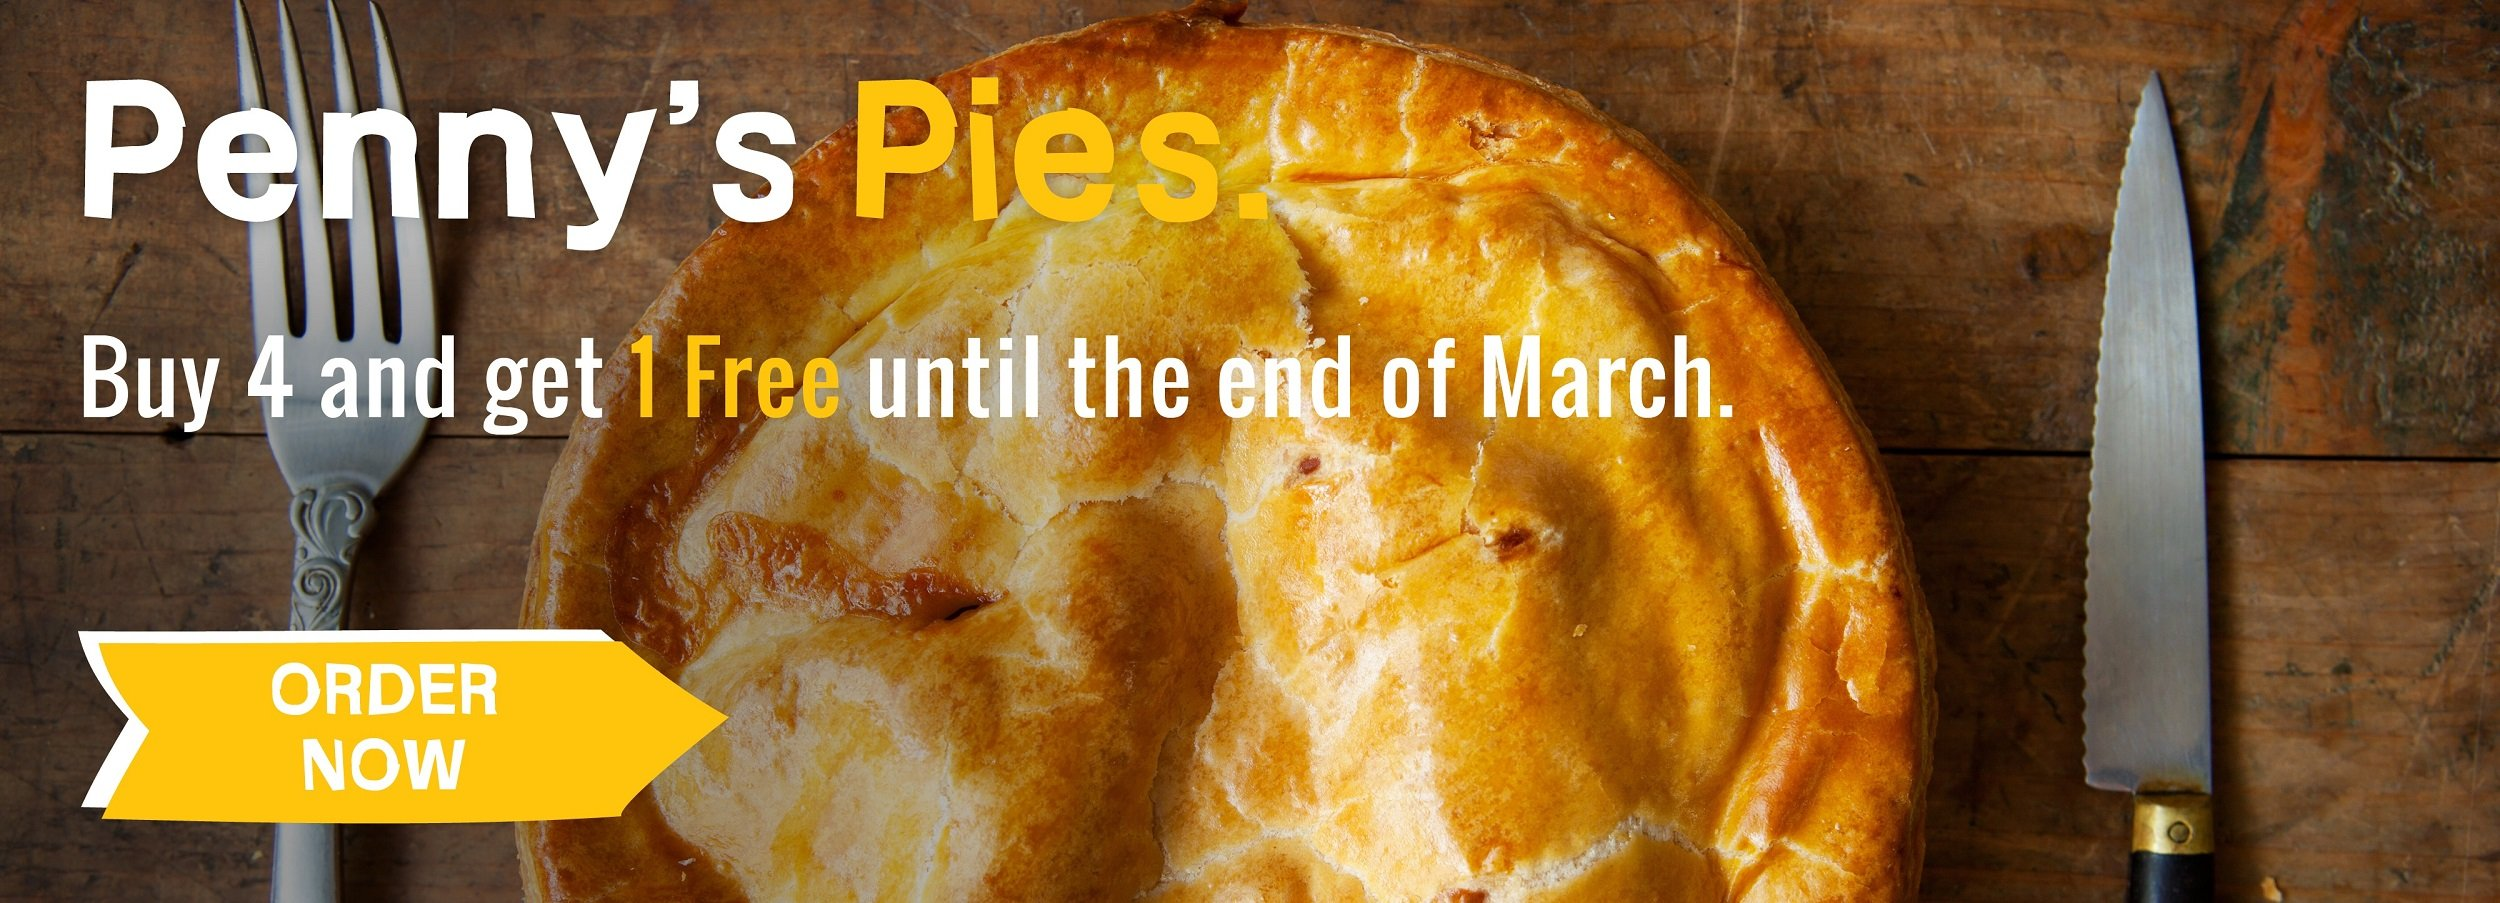 March Pie 2017 Home